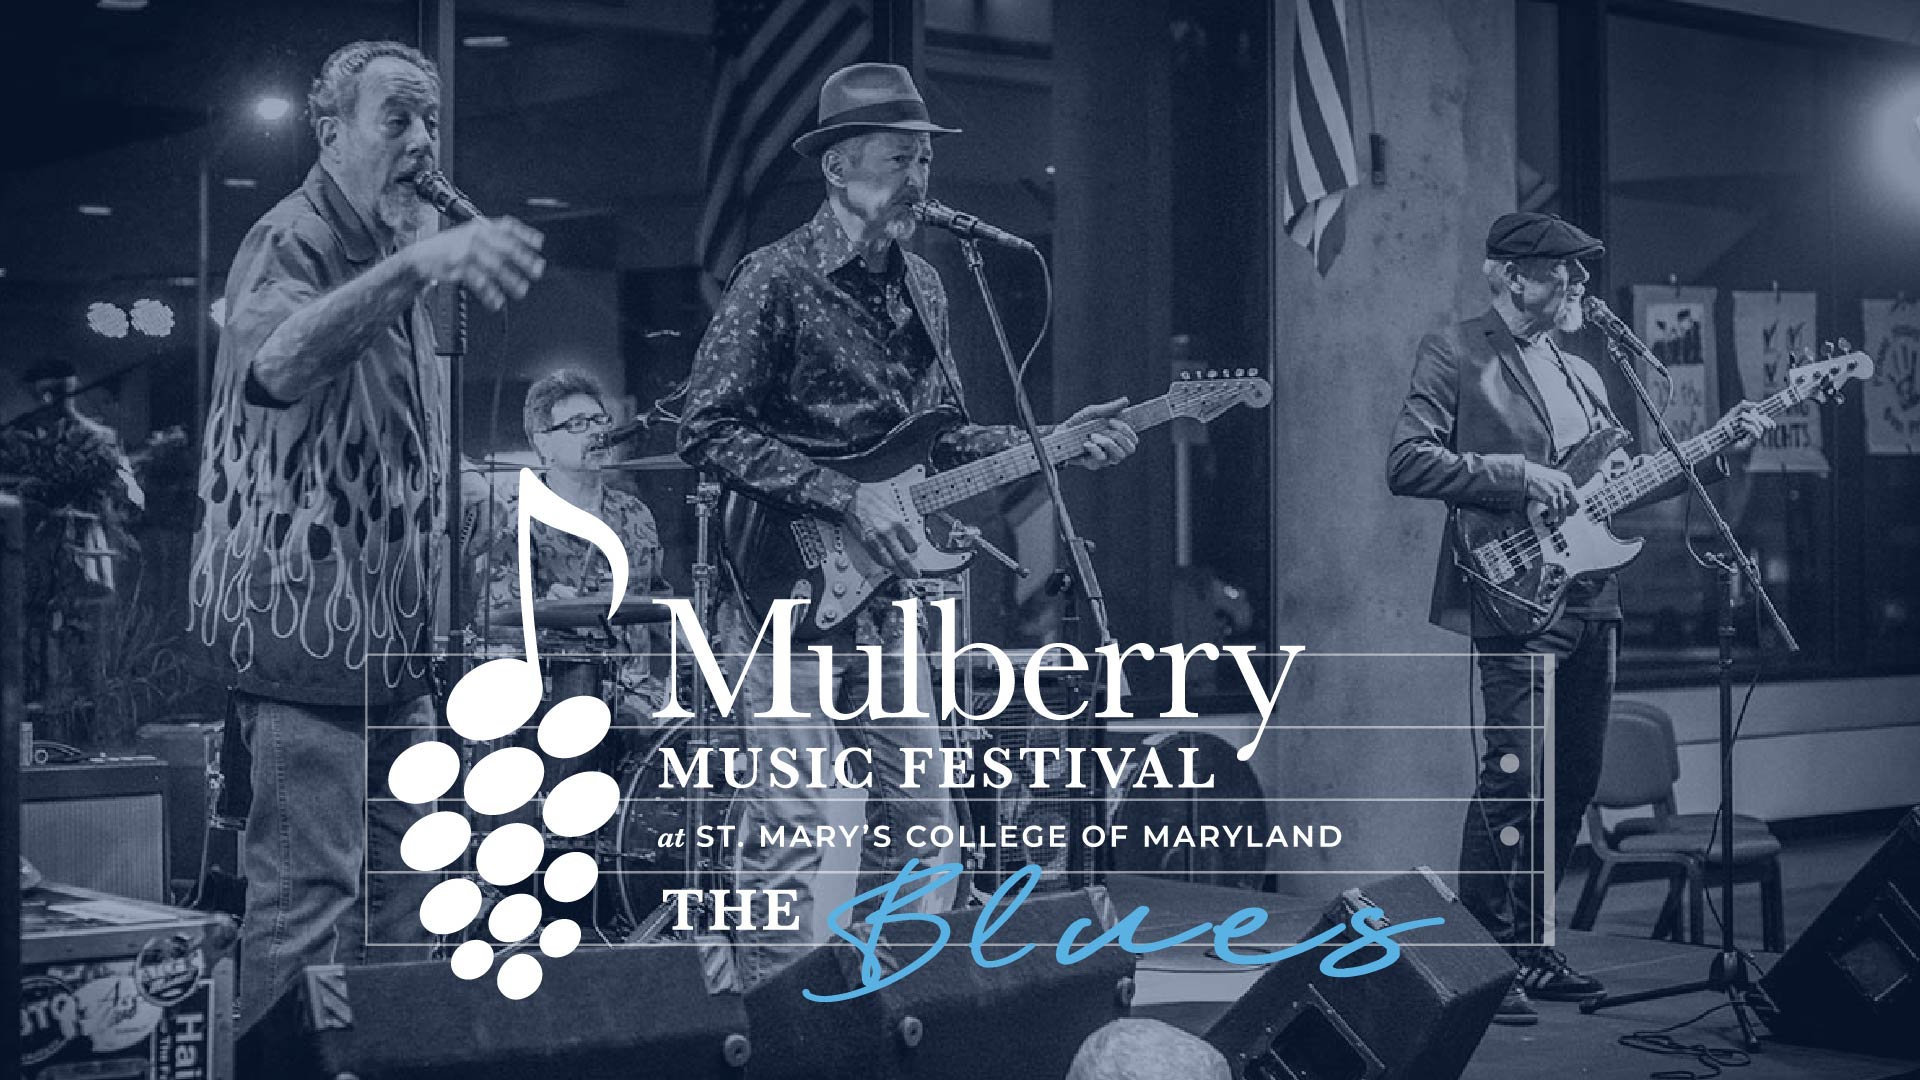 Mulberry Music Festival, at St. Mary's College of Maryland, presents The Blues